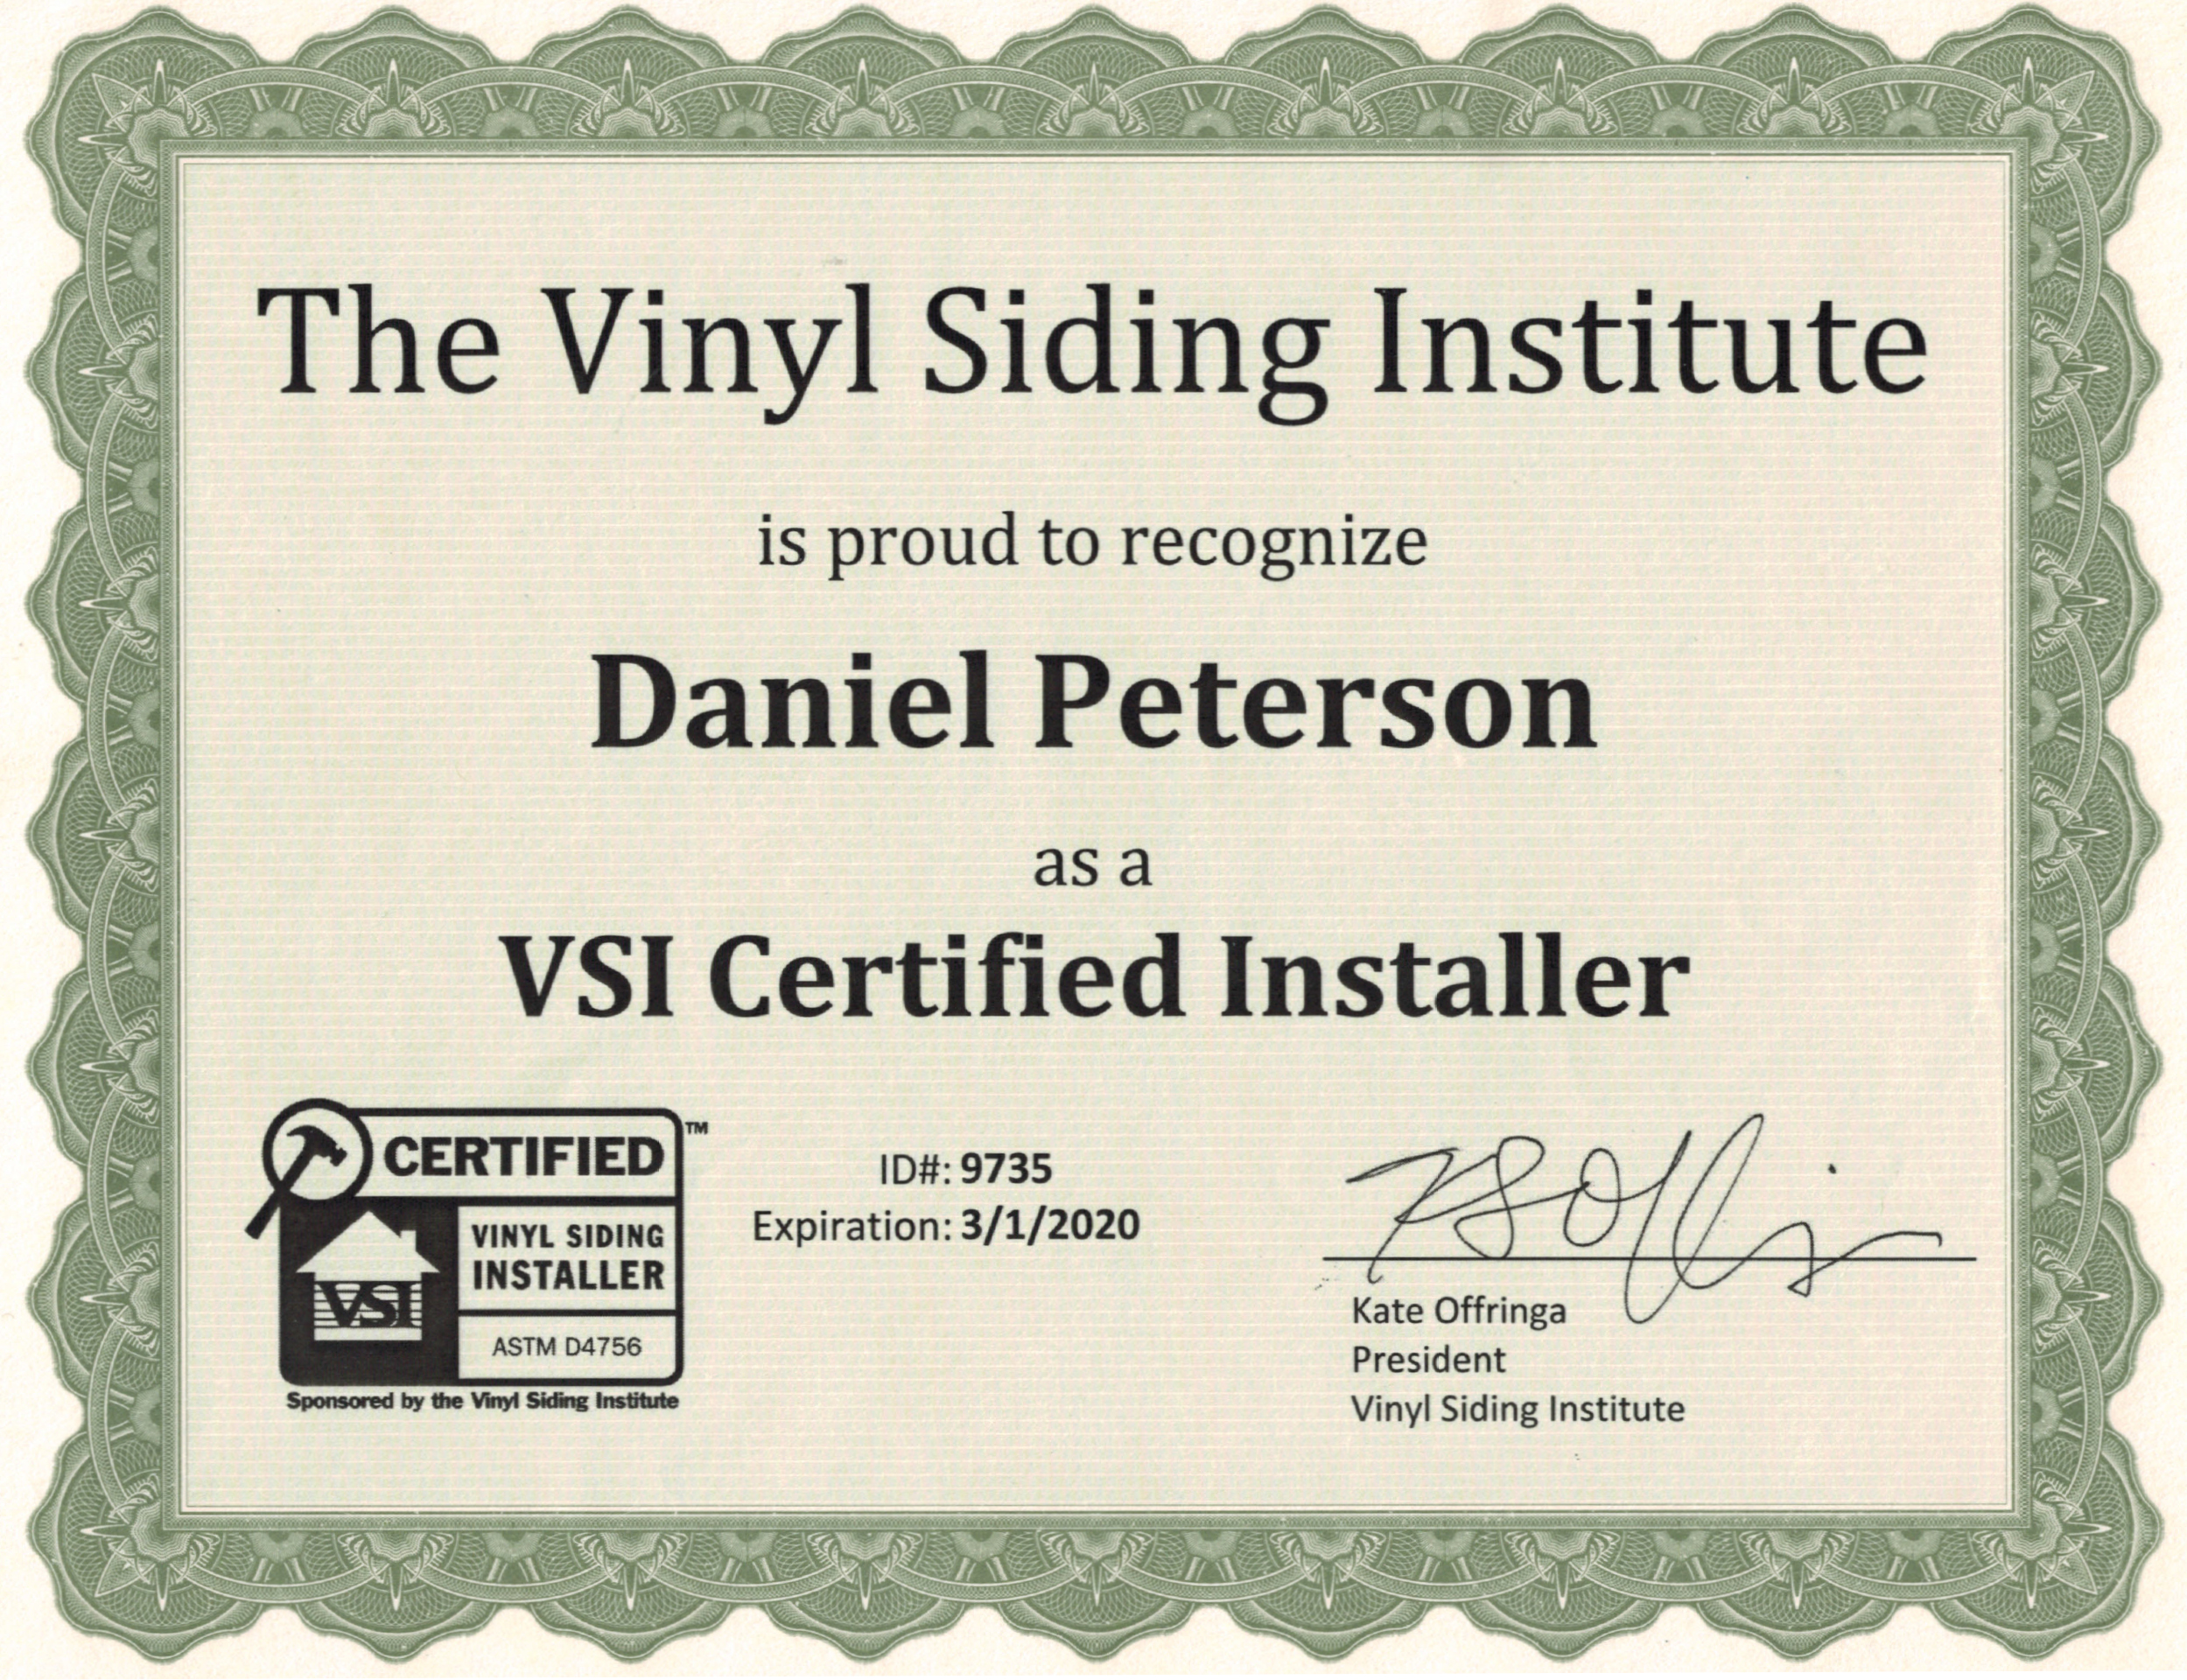 The Vinyl Siding Institute